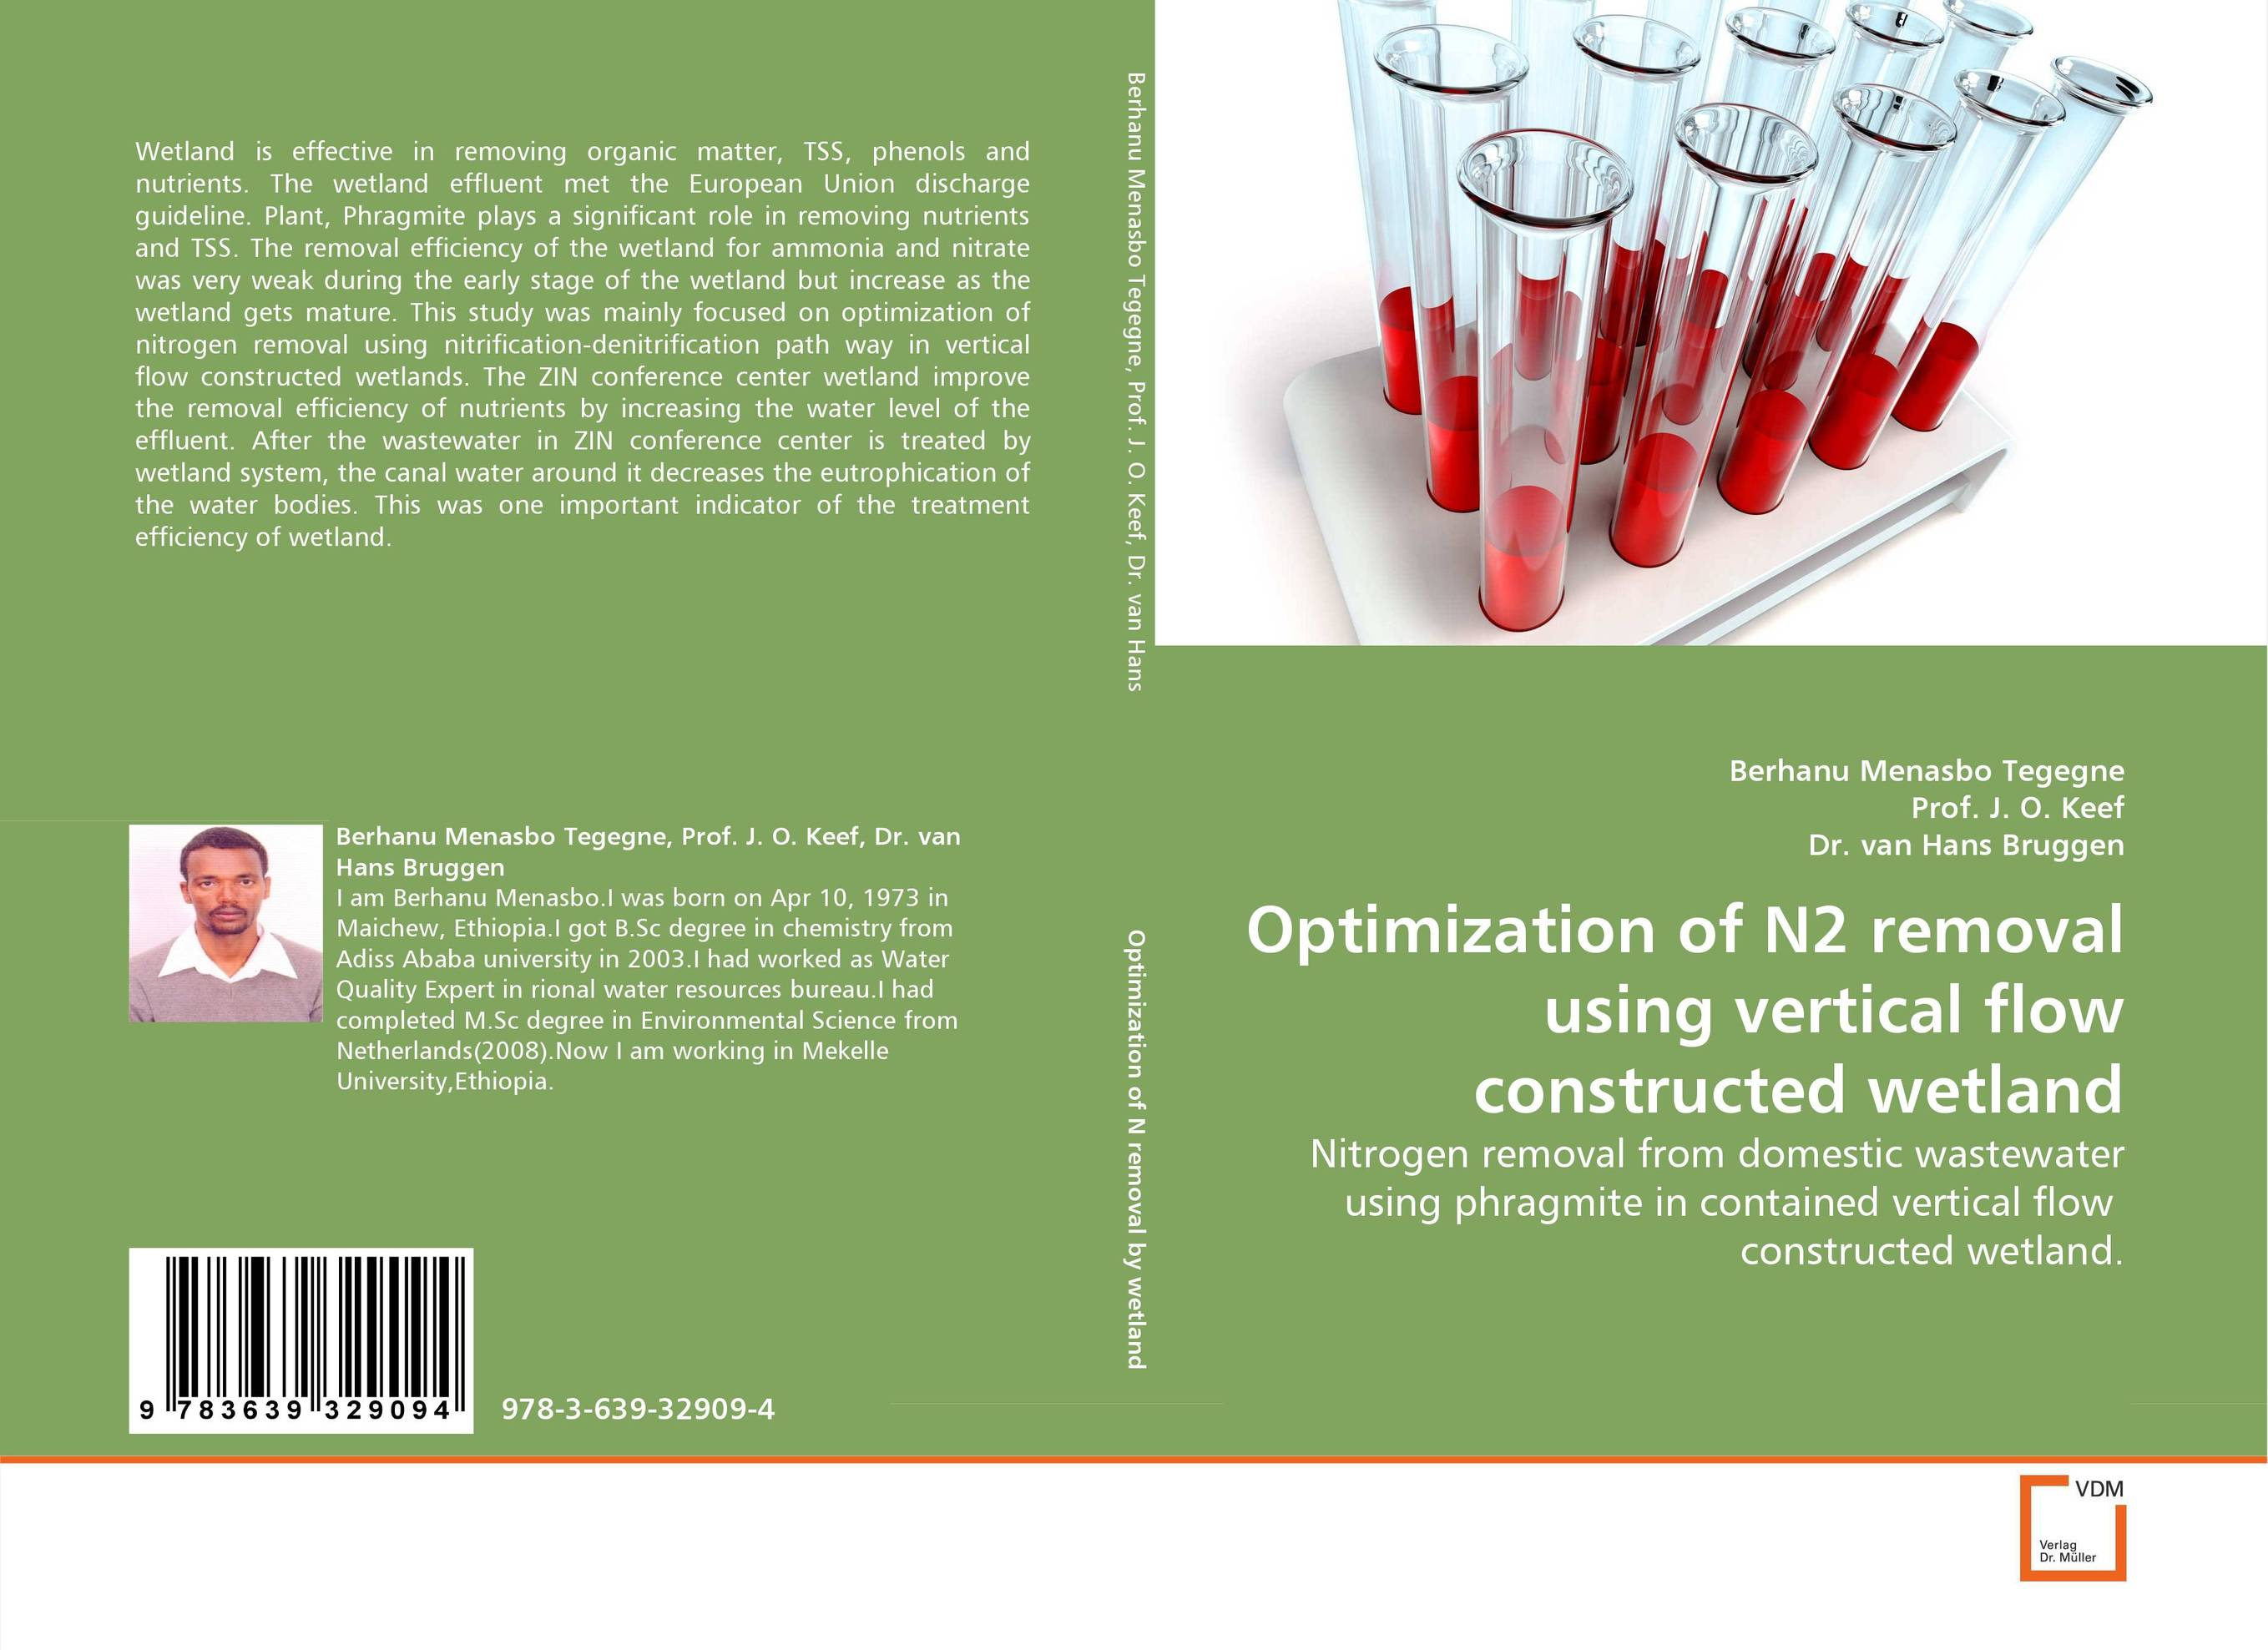 Optimization of N2 removal using vertical flow constructed wetland bacterial composition of constructed wetland s biofilm